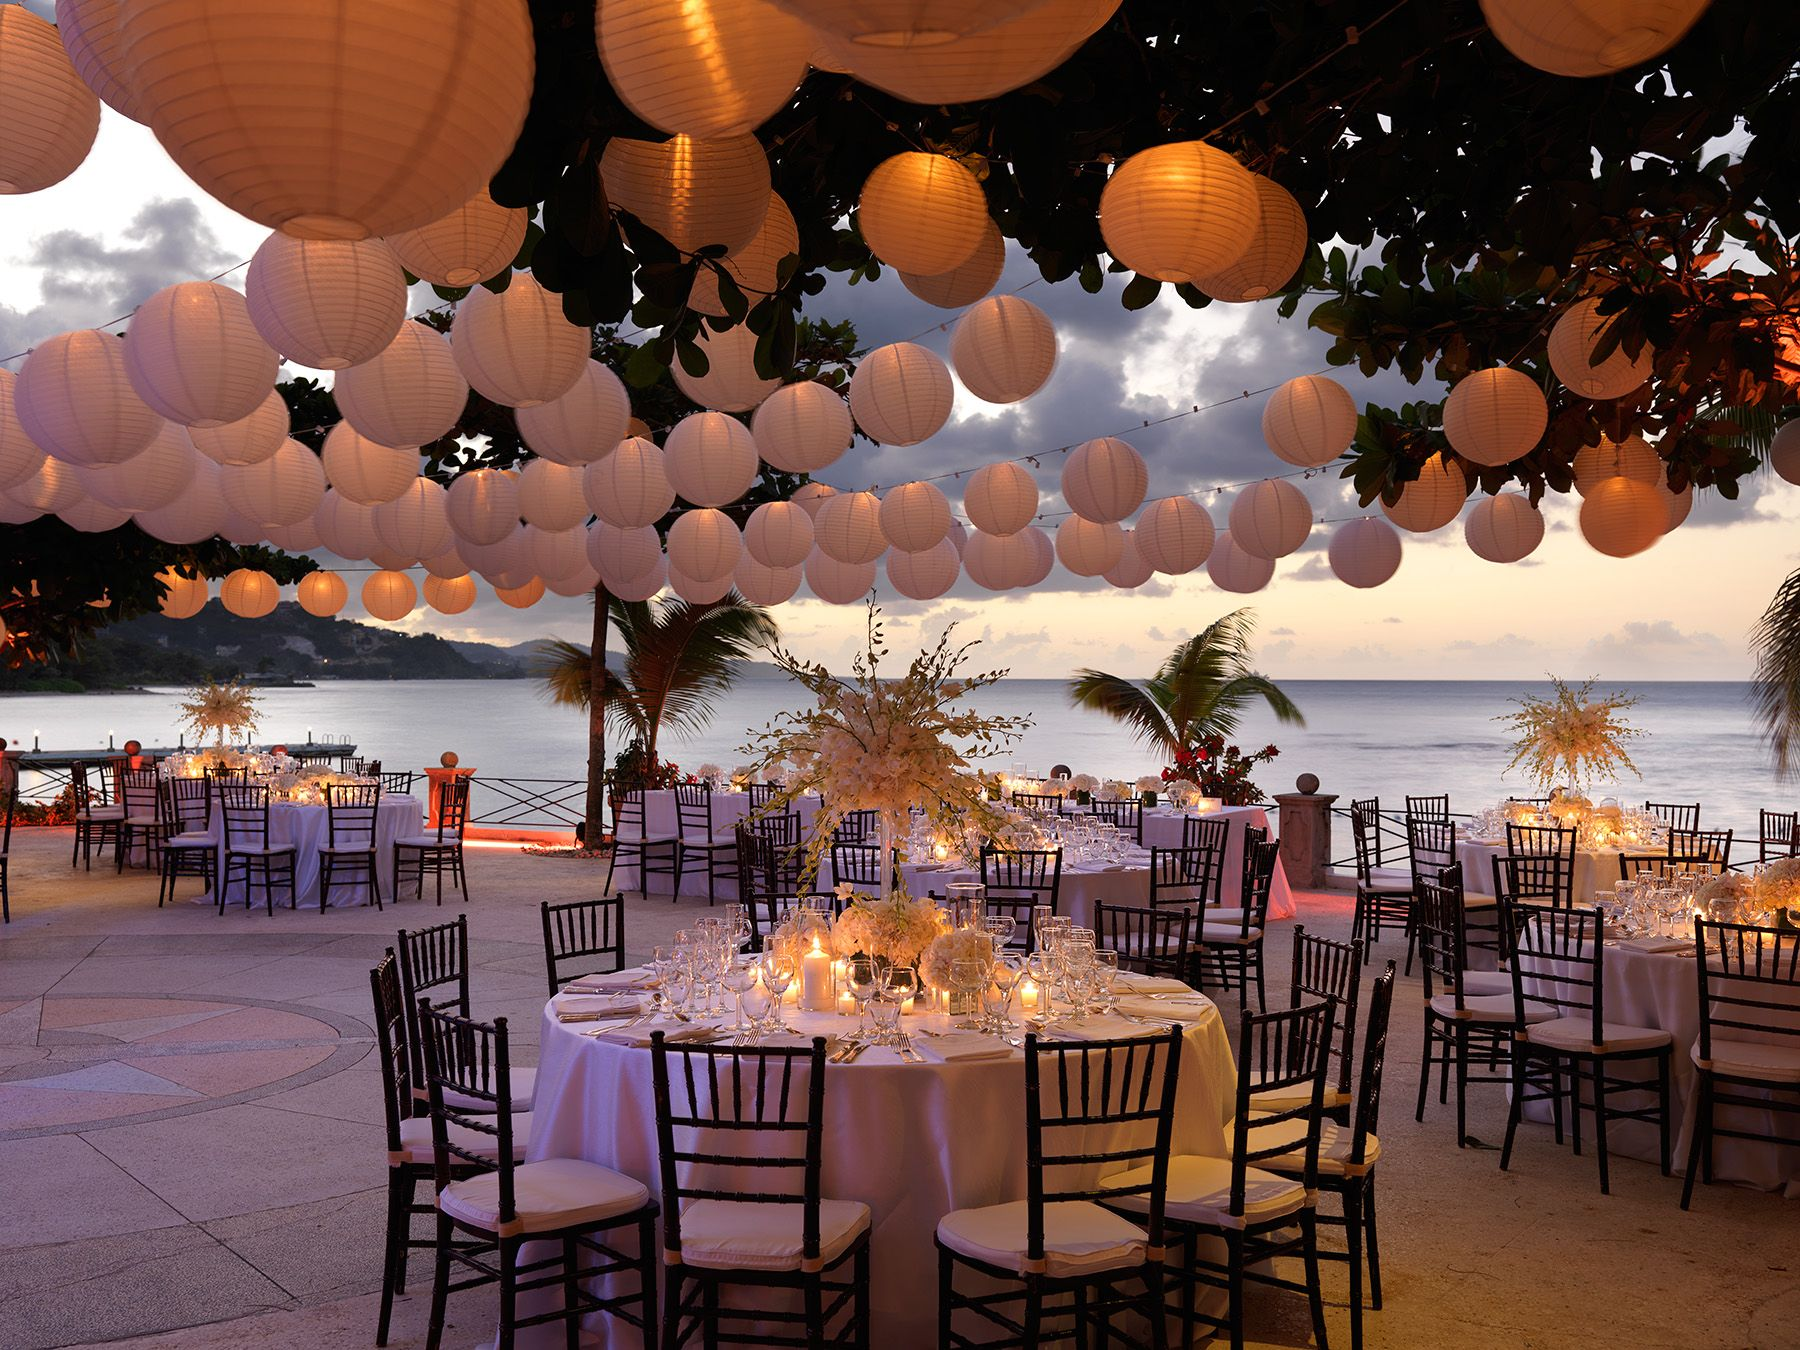 Seaside terrace wedding reception at round hill hotel and villas in seaside terrace wedding reception at round hill hotel and villas in montego bay jamaica junglespirit Image collections